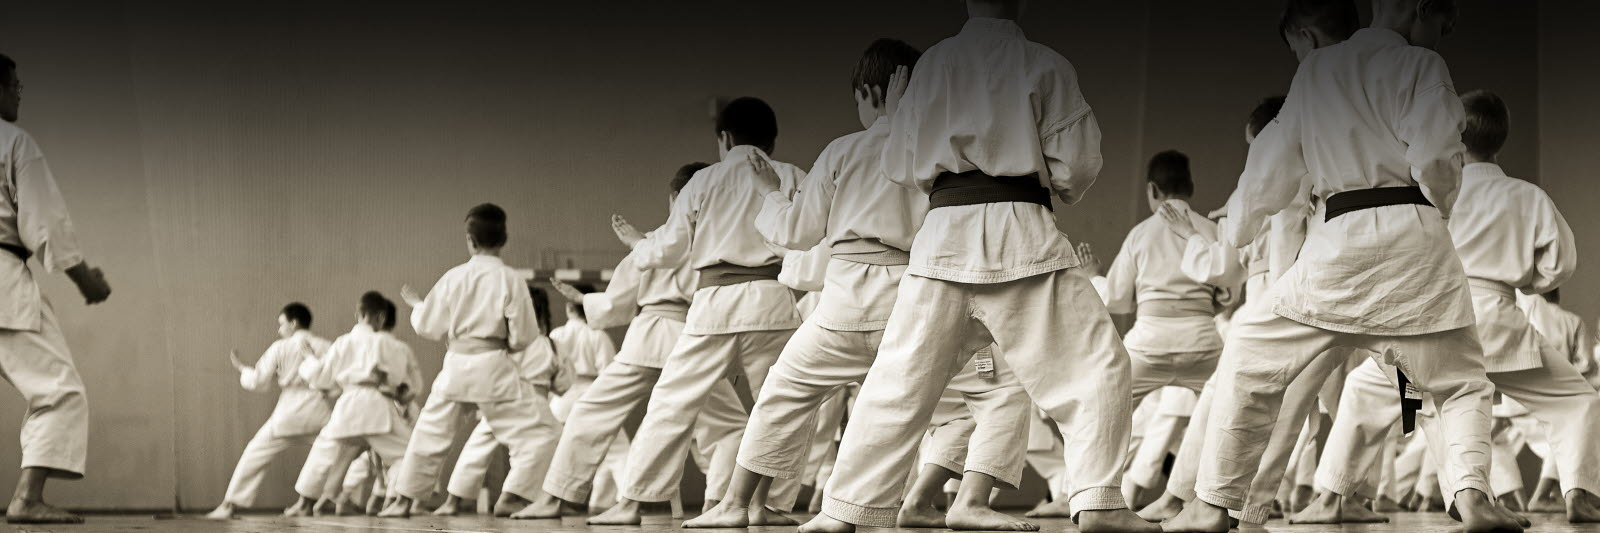 training karate athletes